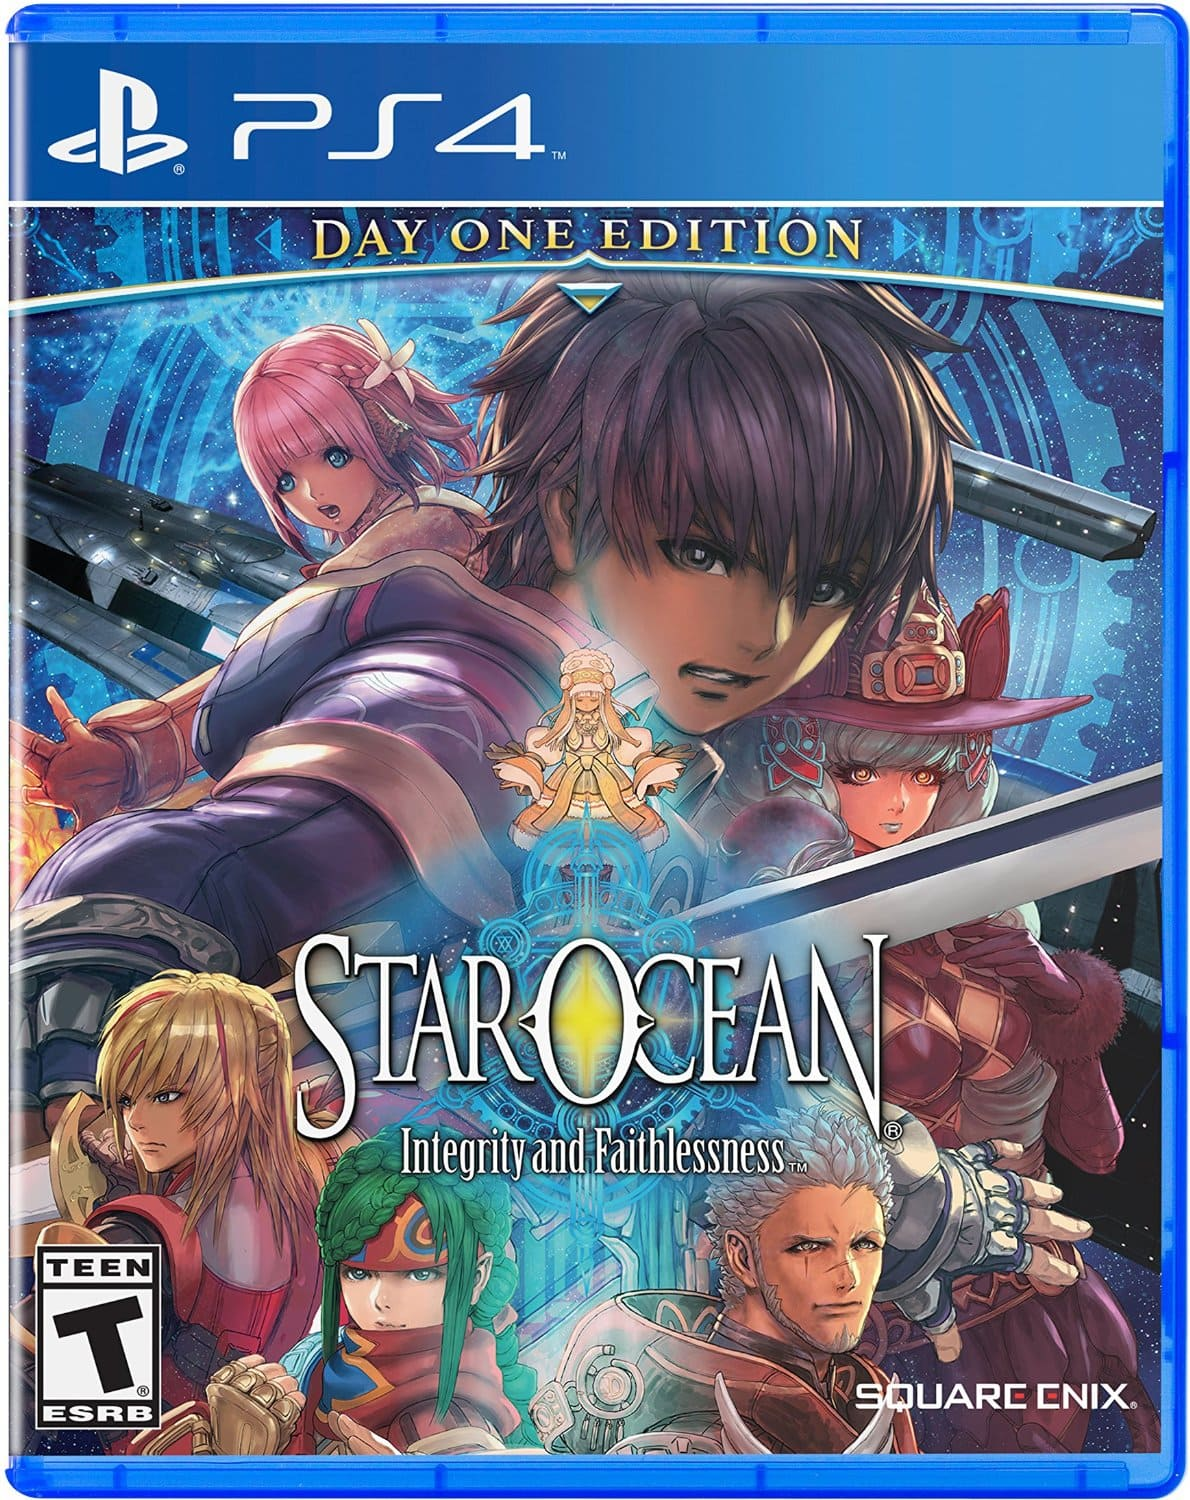 Star Ocean: Integrity and Faithlessness (PS4) $22.80 via Amazon